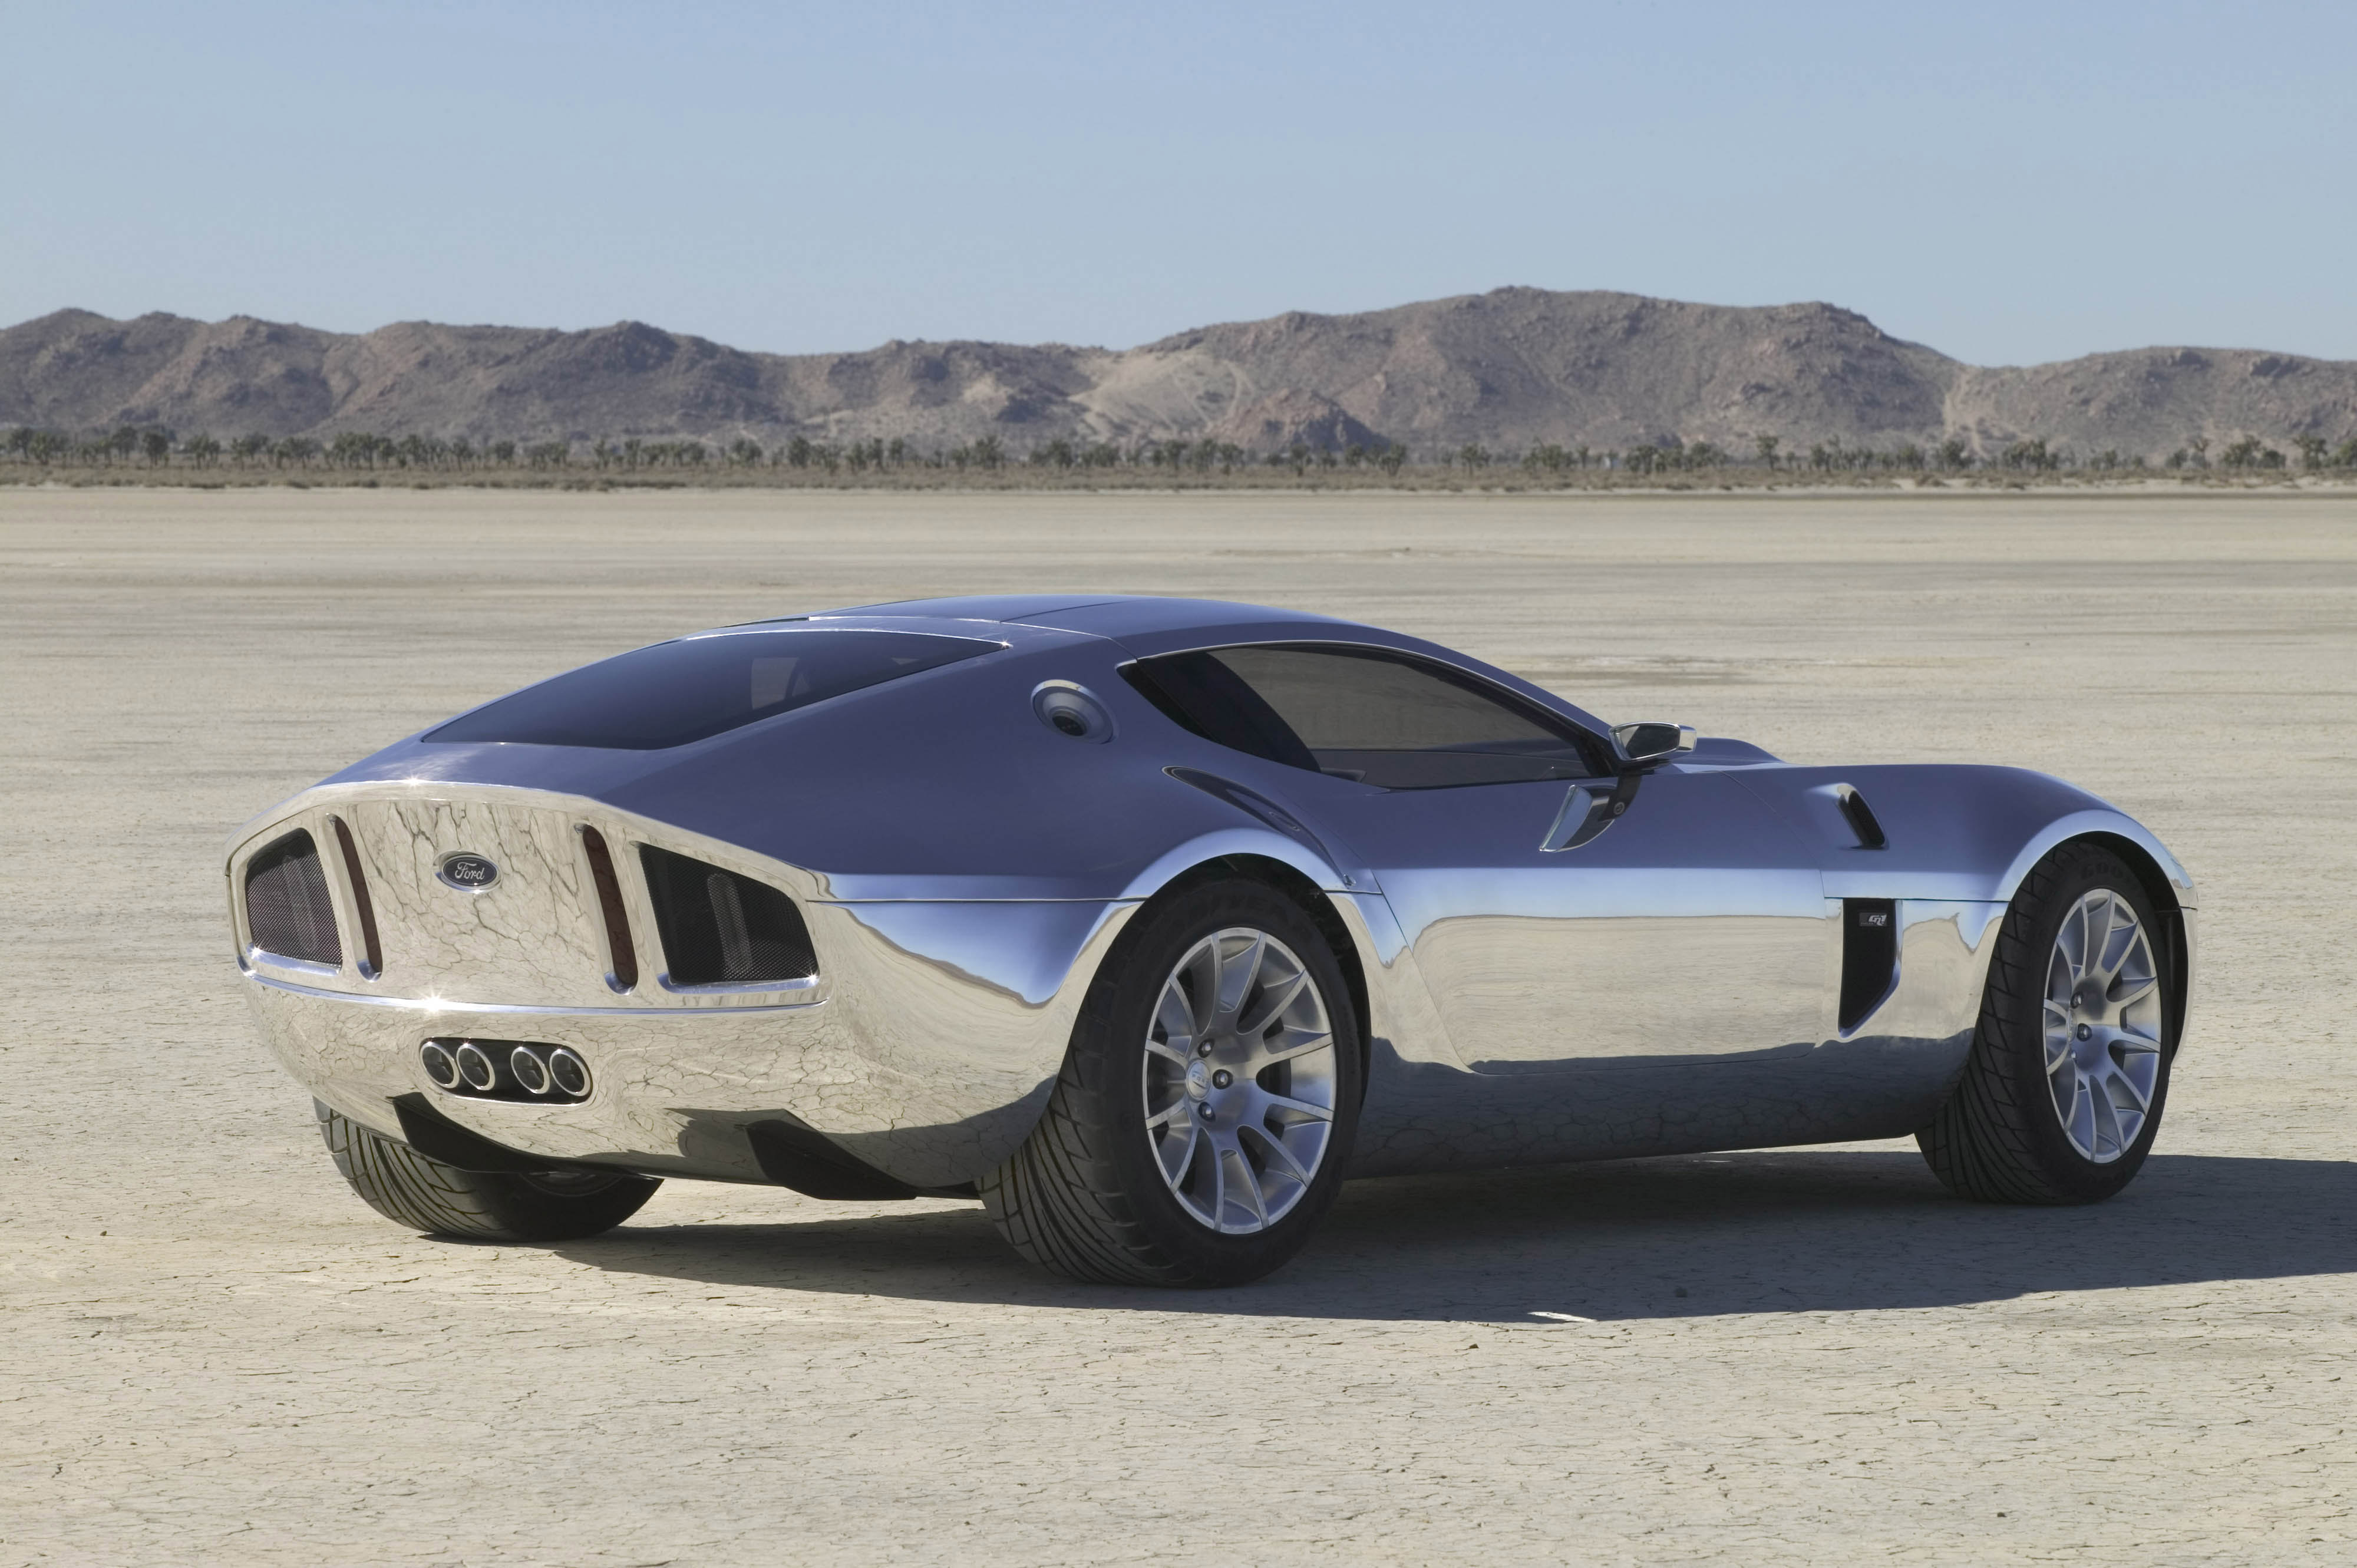 Pajero Car Hd Wallpaper Ford Shelby Gr 1 Concept Picture 18129